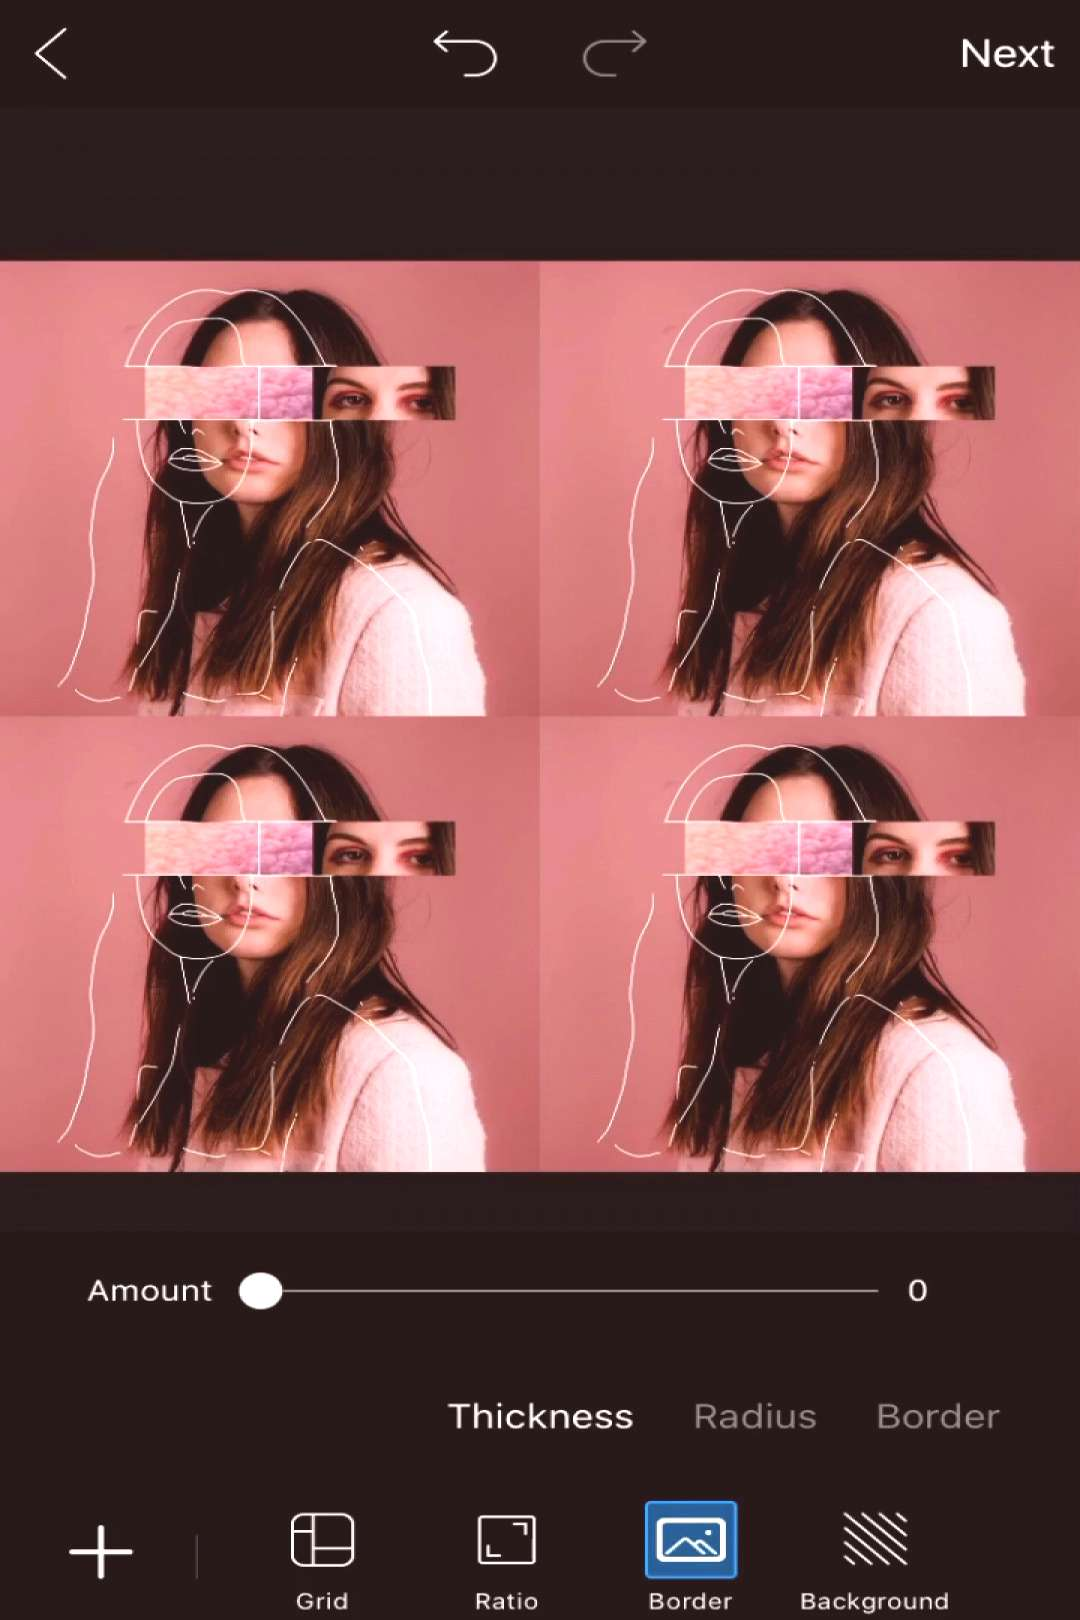 Designing An Aesthetically Pleasing Minimalist Collage With Just Your Phone ? | PicsArt Tutorial